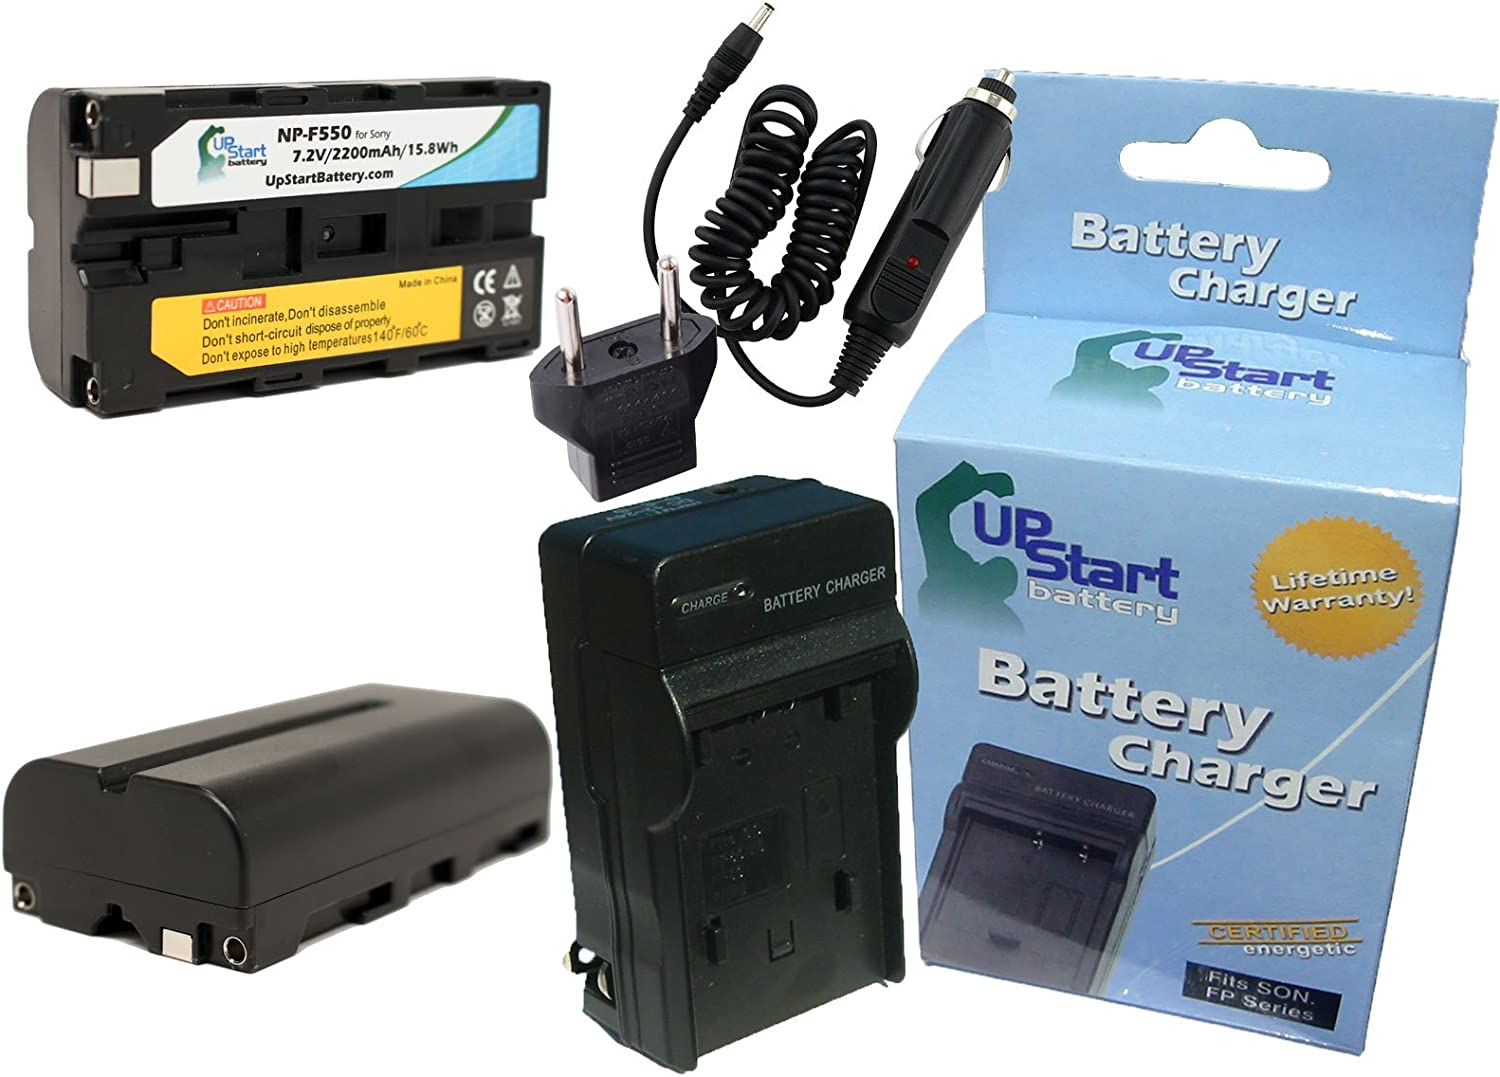 Charger with Car /& EU Adapters Replacement for Sony CCD-TRV68 Battery 2200mAh 7.2V Lithium-Ion 2 Pack Compatible with Sony NP-F550 Digital Camera Battery and Charger